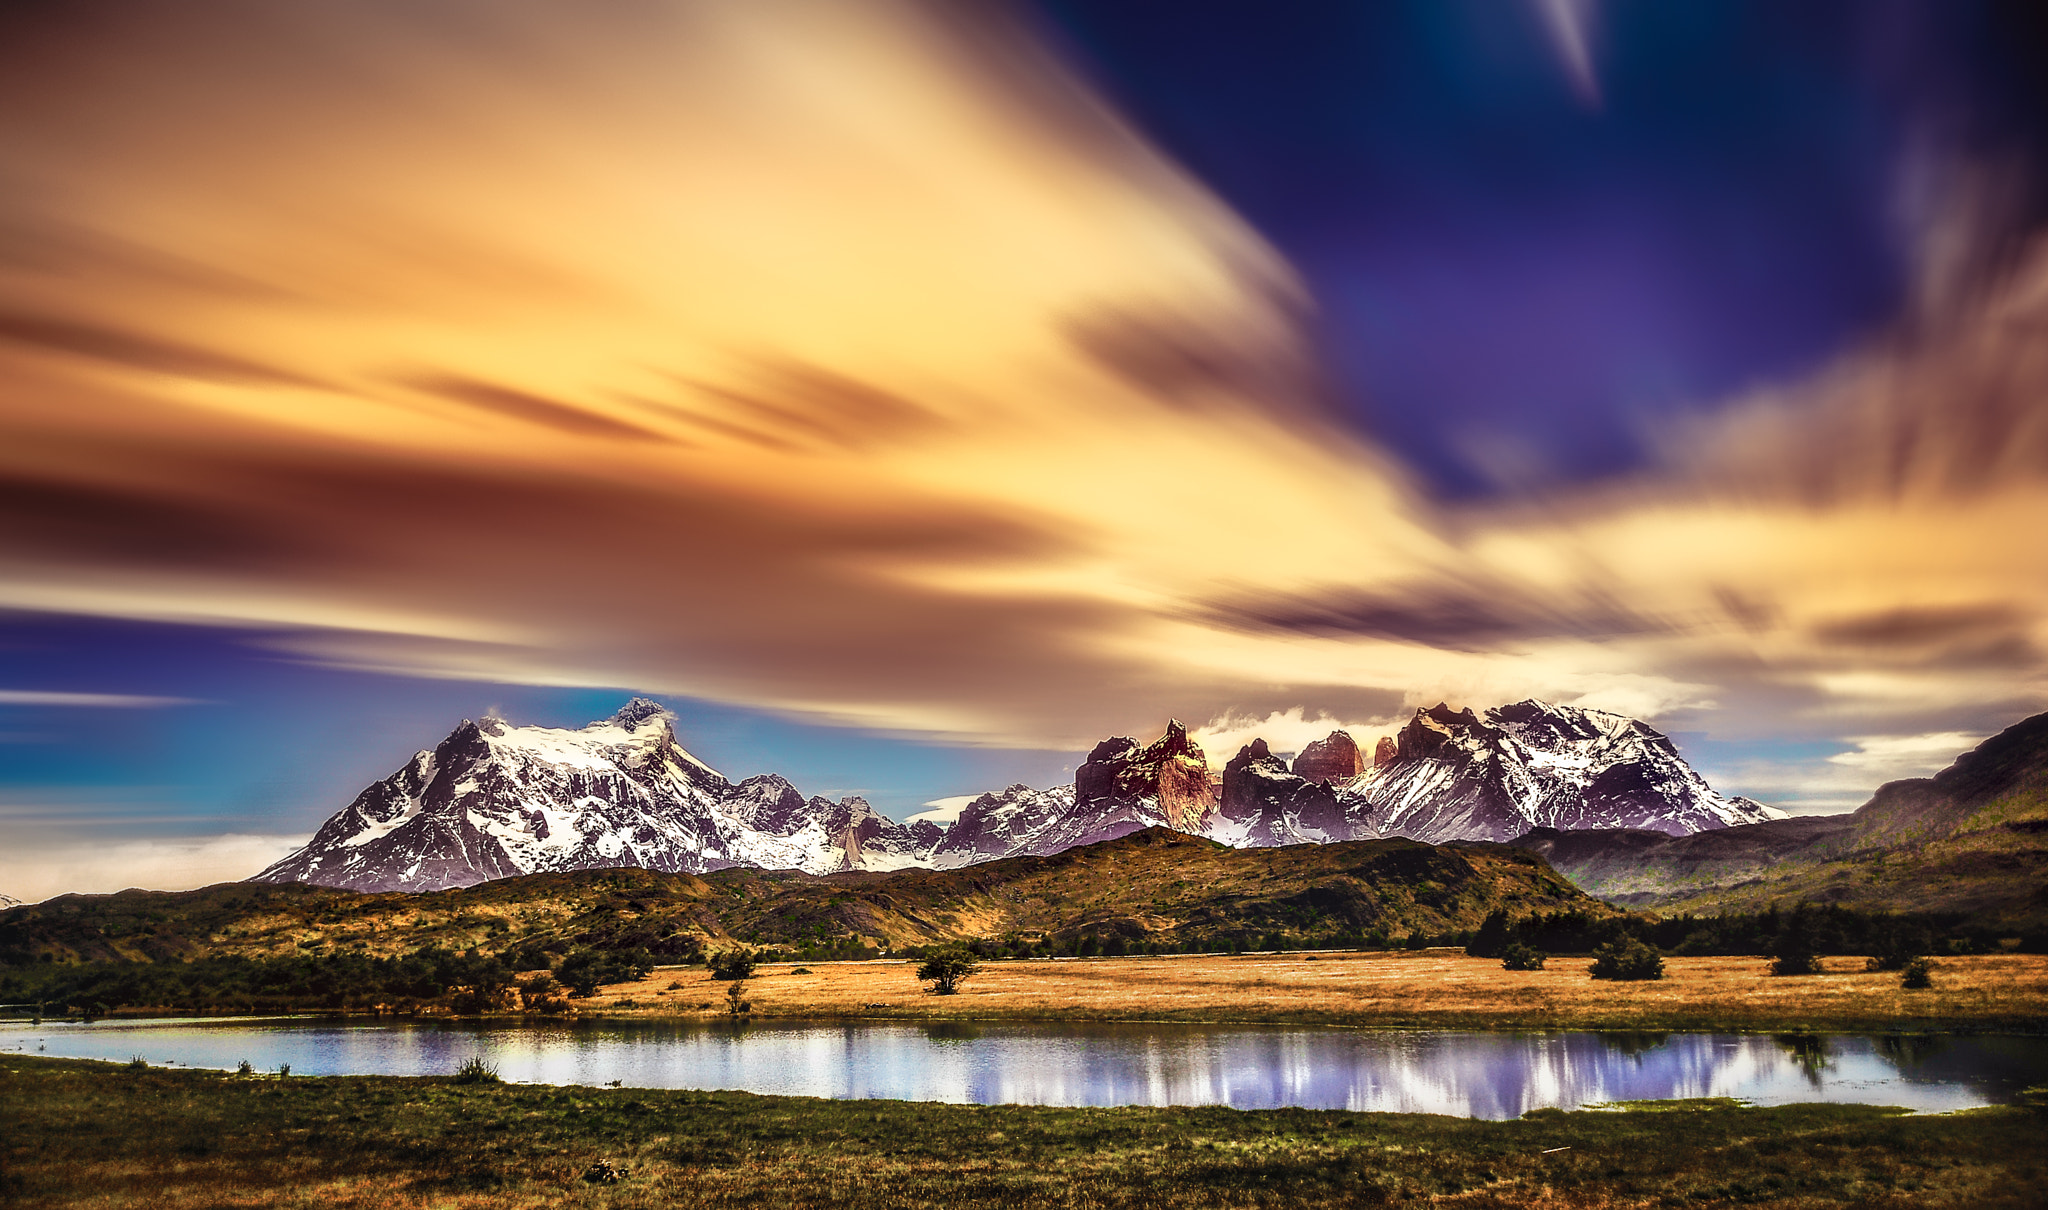 Photograph Sunset. Torres del Paine National Park in Chilean Patagonia. Patagonia, Chile © Nora de Angelli / ww by Nora De Angelli on 500px